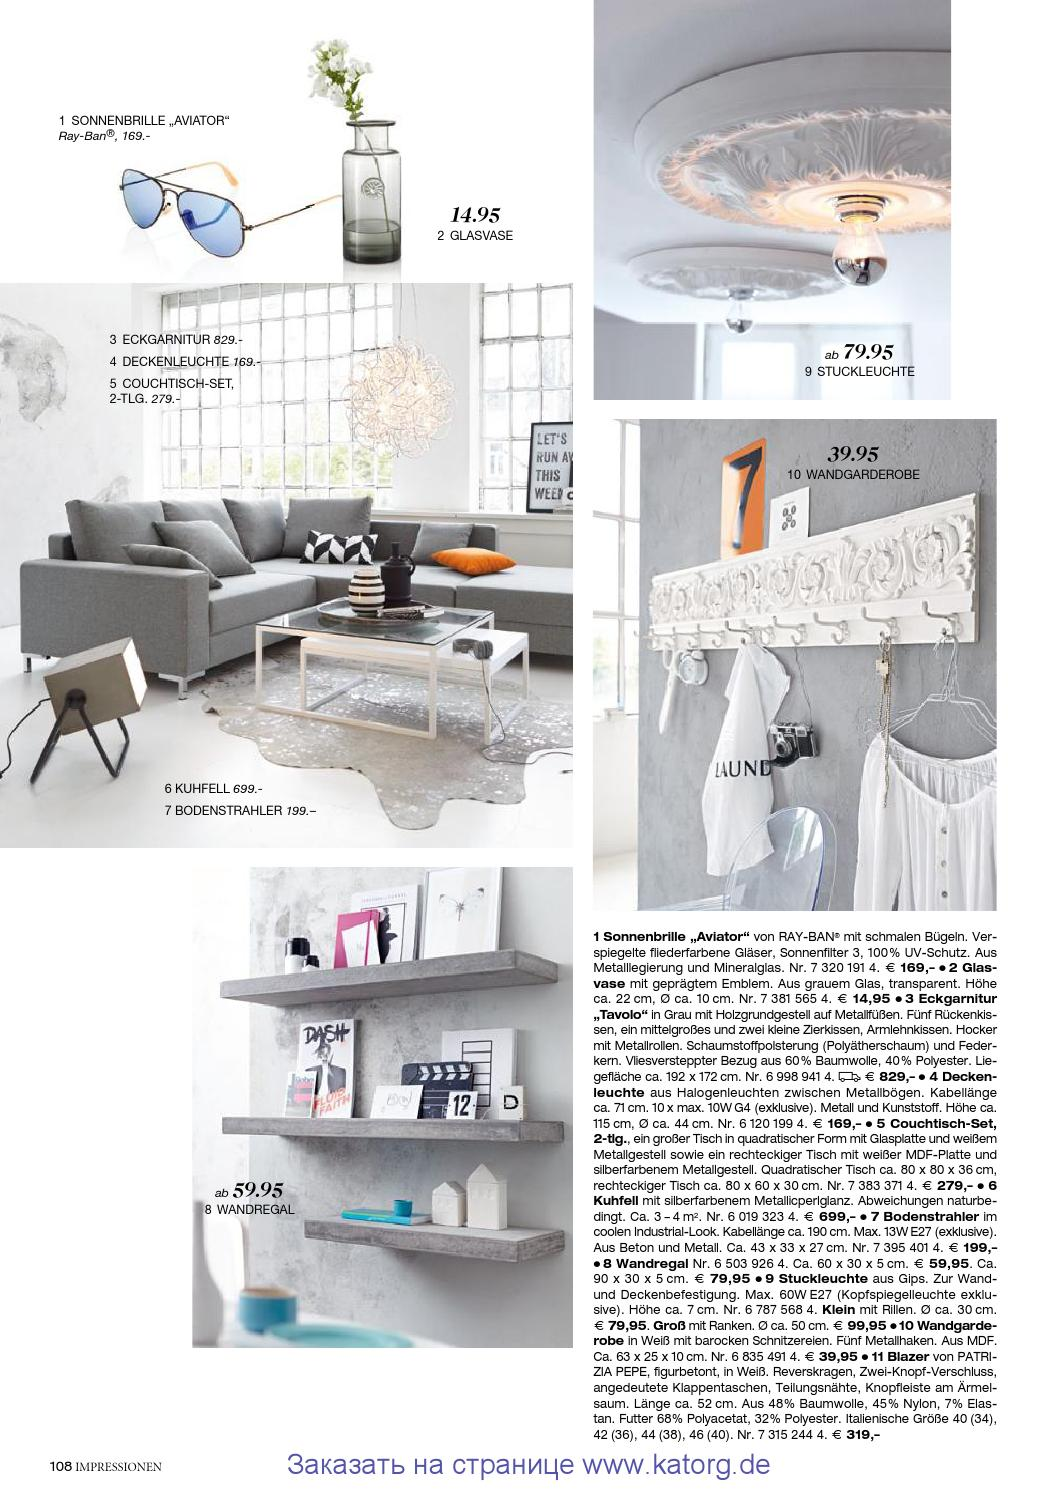 Couchtisch Space Impressionen 3 Sommer 15 By Katorg World Of Shopping Issuu